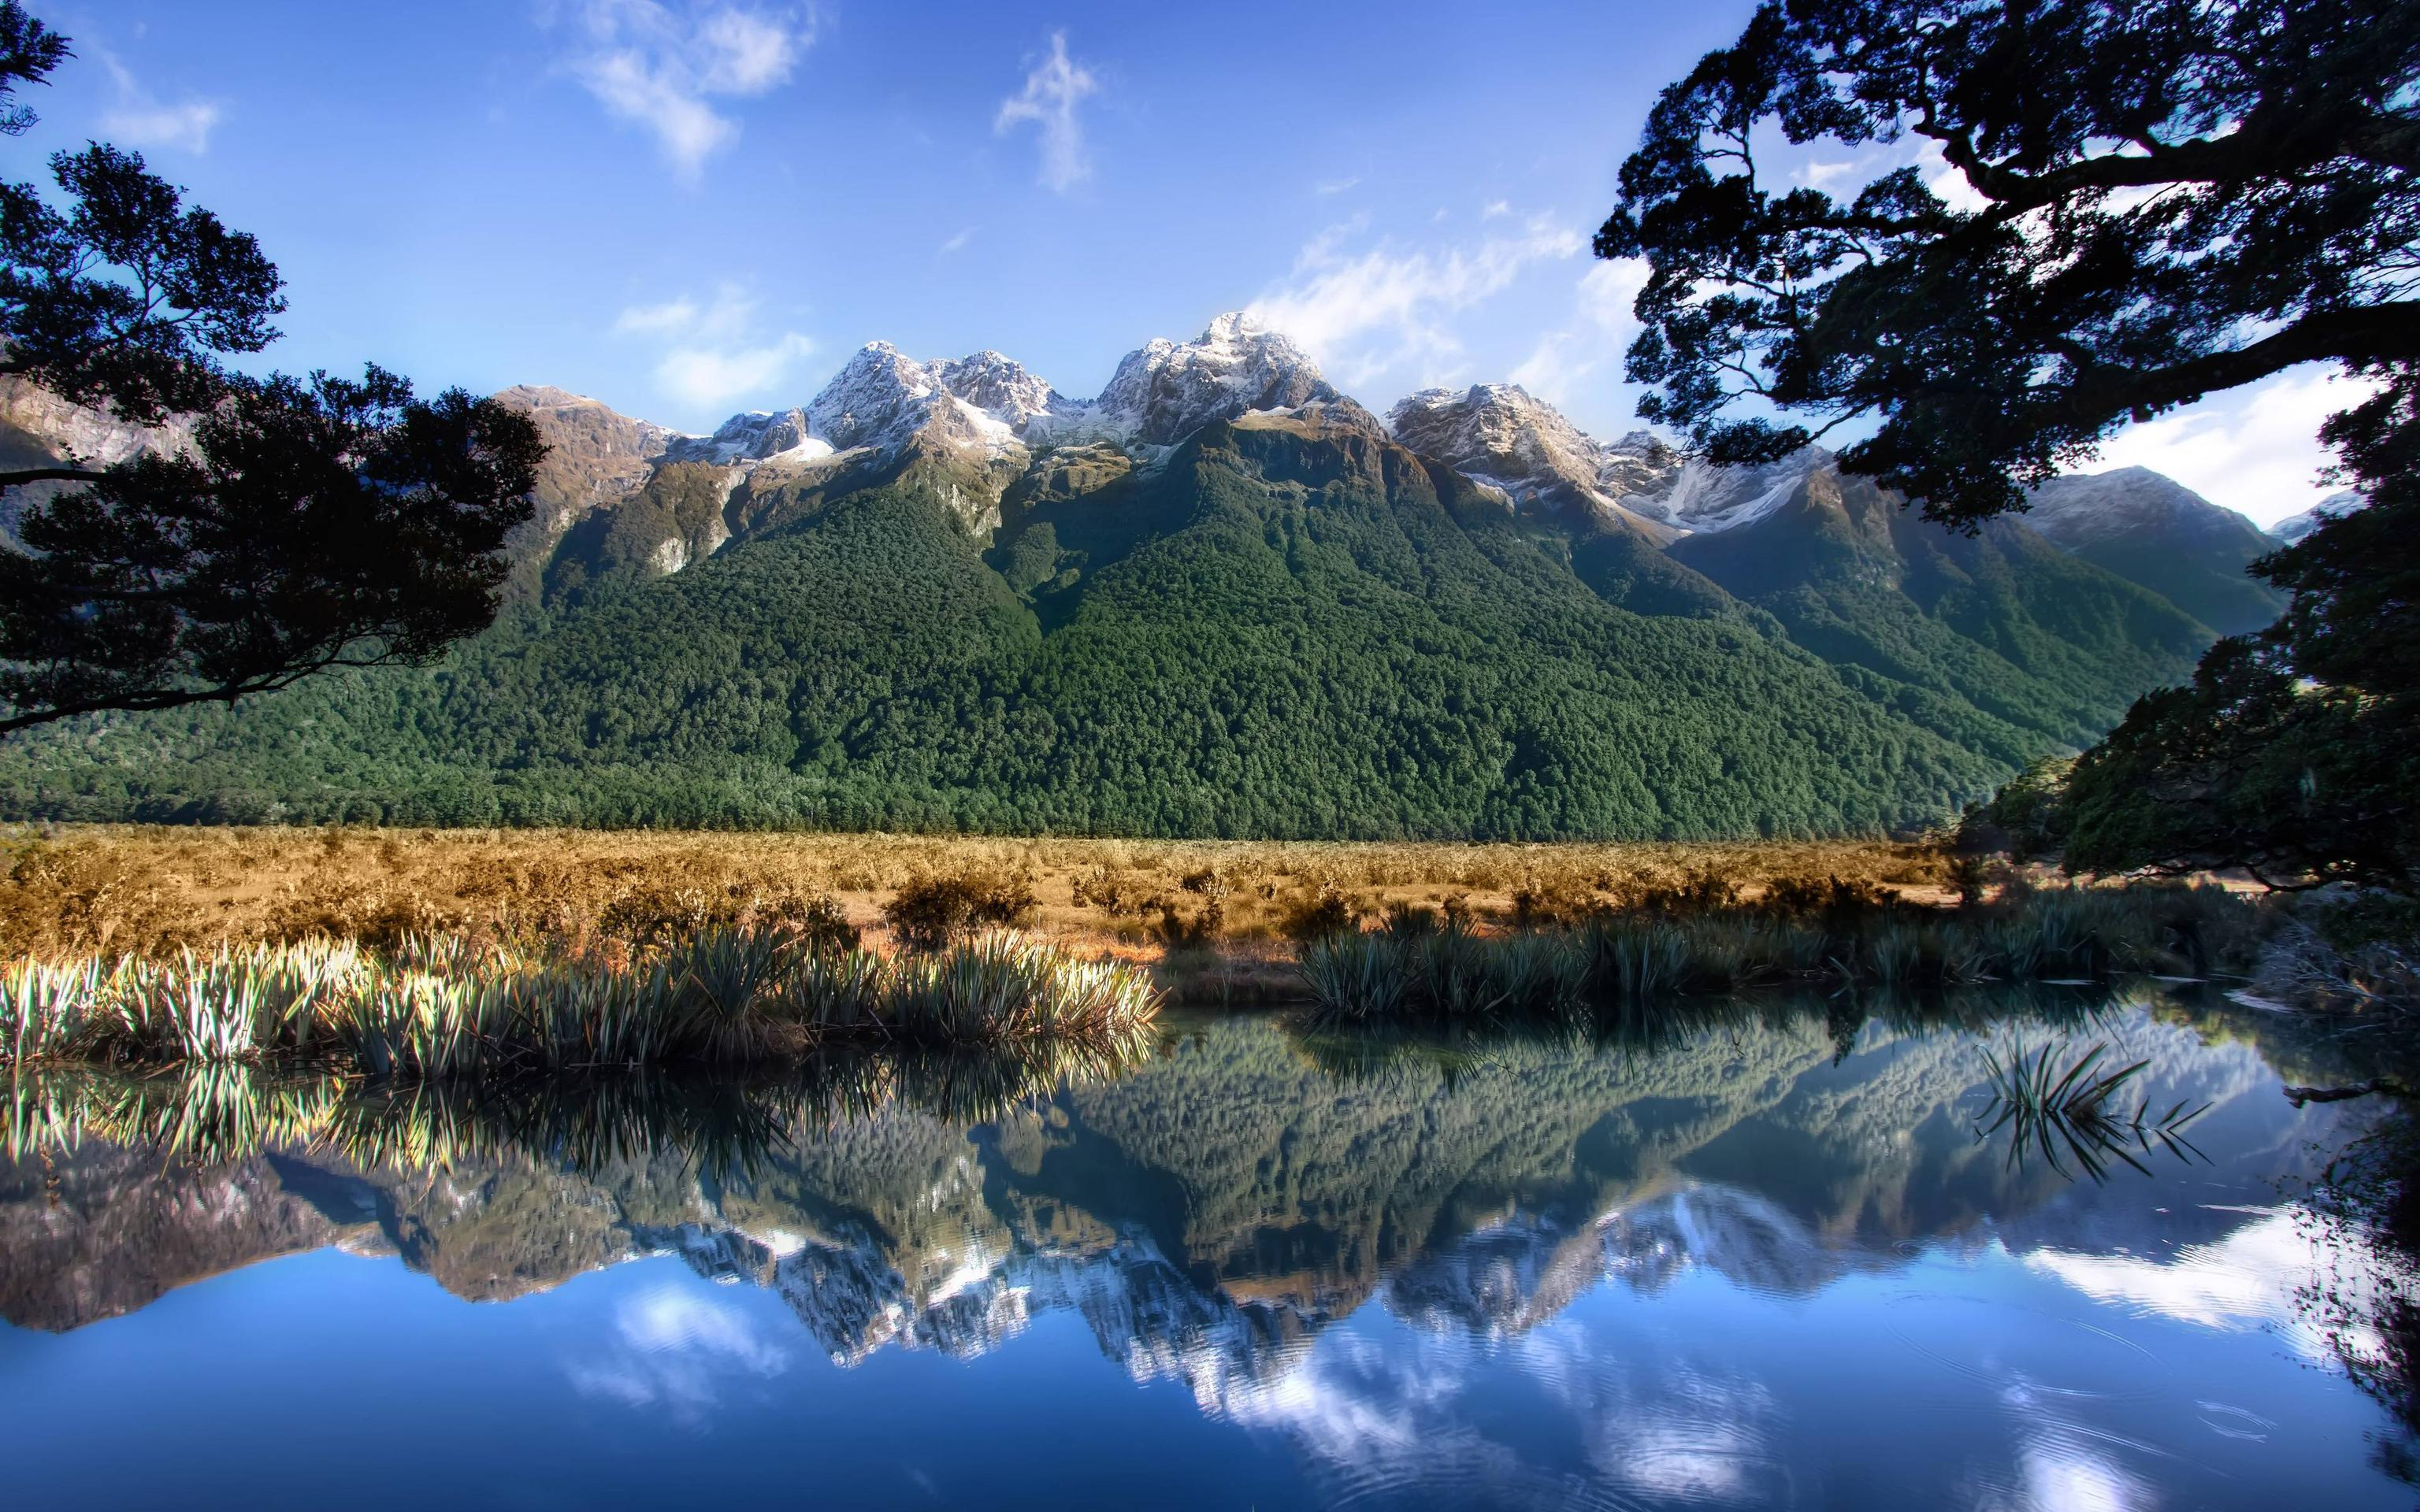 Milford Sound New Zealand Wallpaper